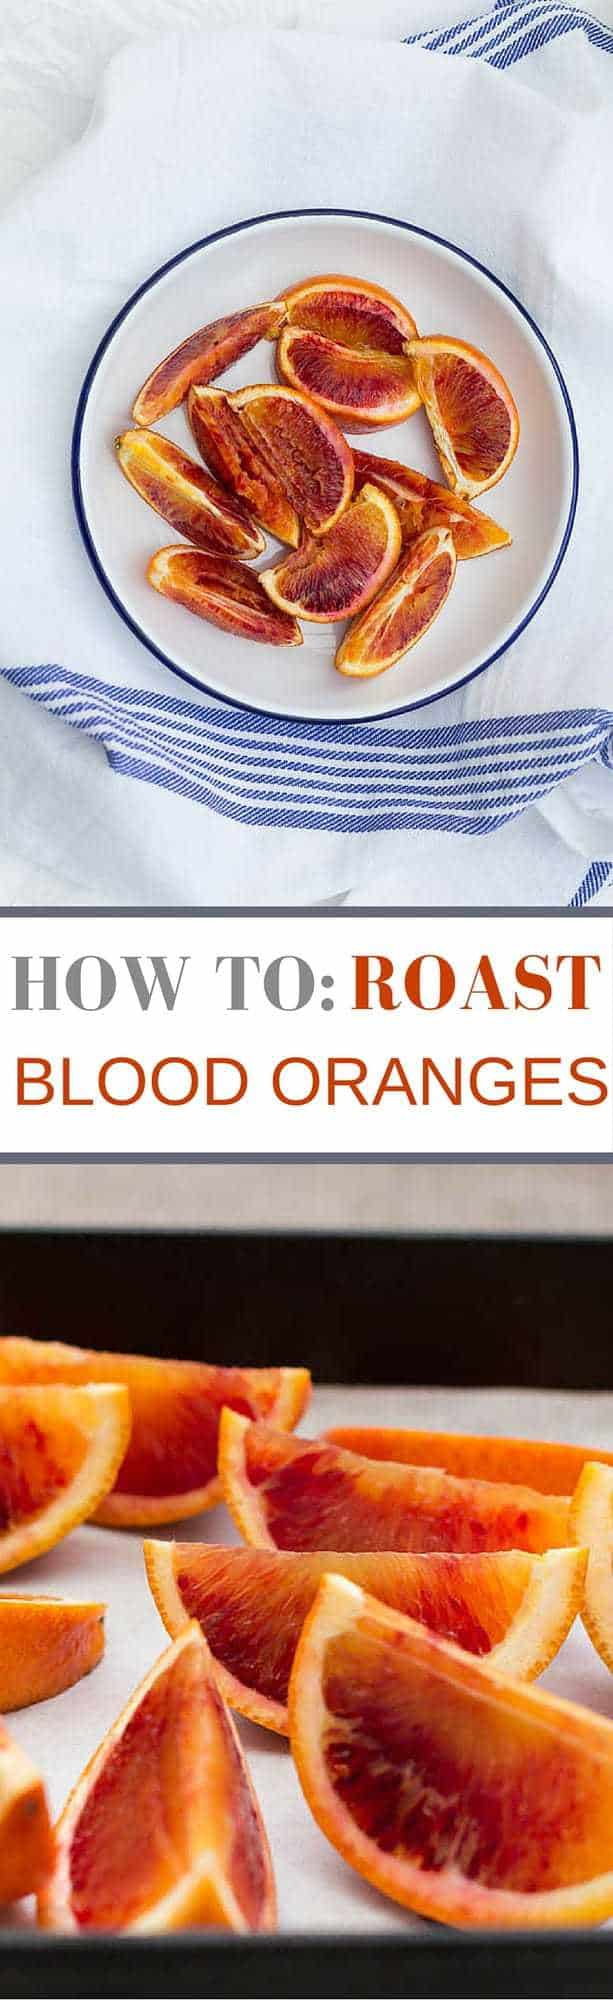 How to Roast Blood Oranges | Recipes From A Pantry